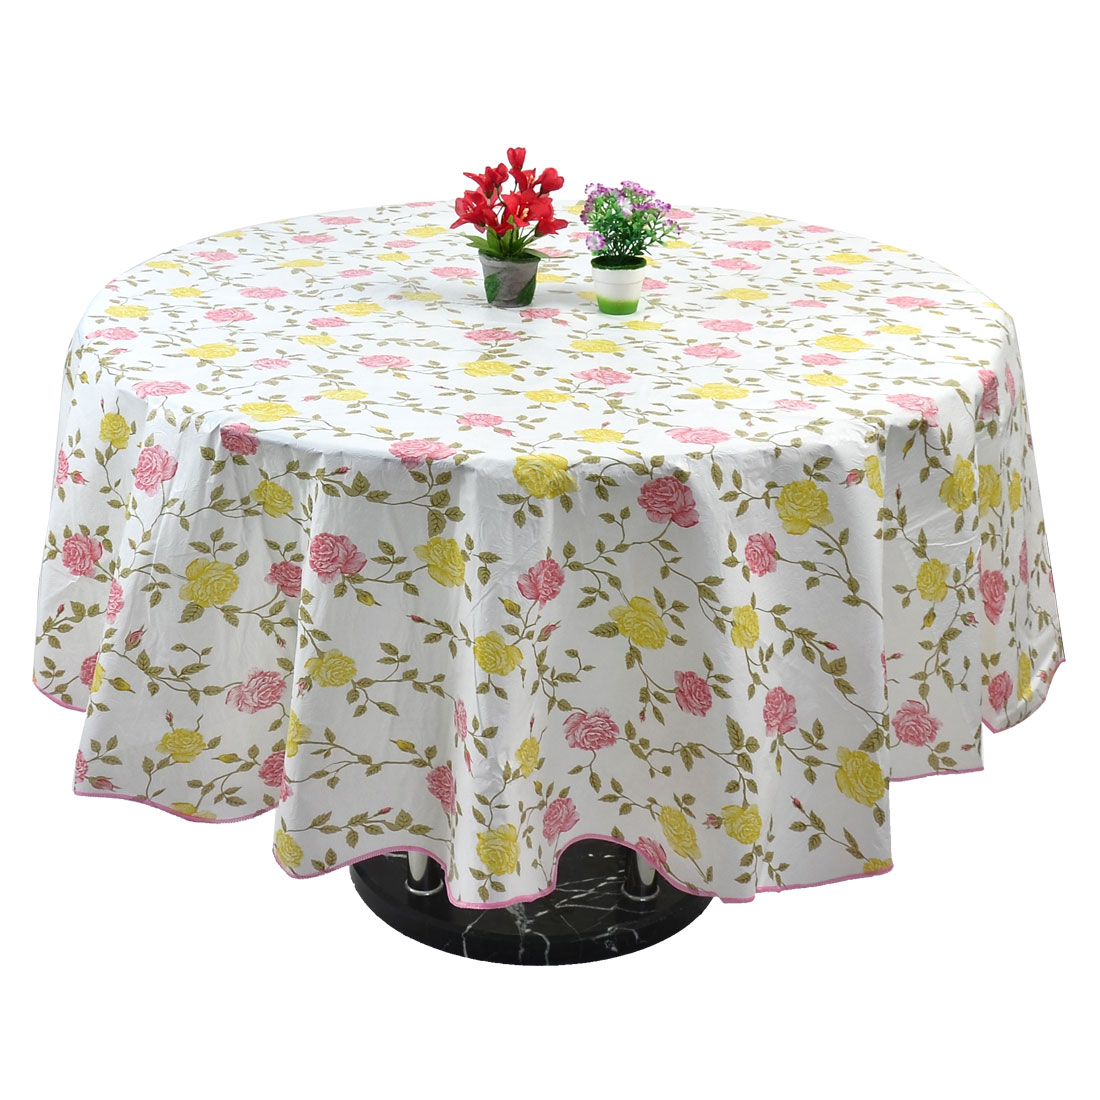 Bi-color Rose Pattern Round 70 Inch Tablecloth Cover Water/Oil Stain Resistant